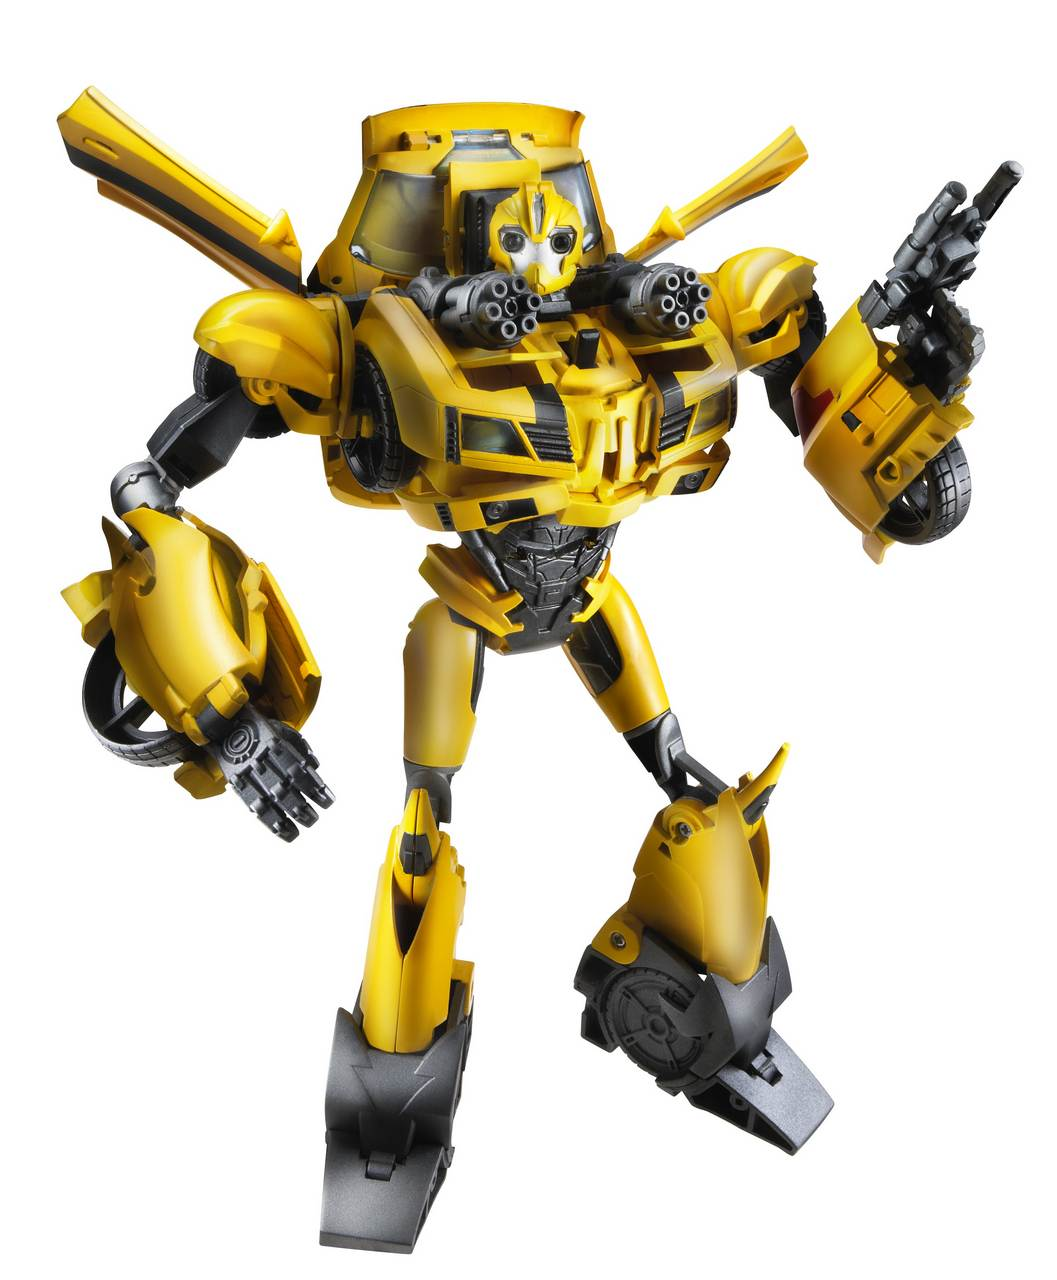 Transformers Prime Robots in Disguise Mainline Official ...